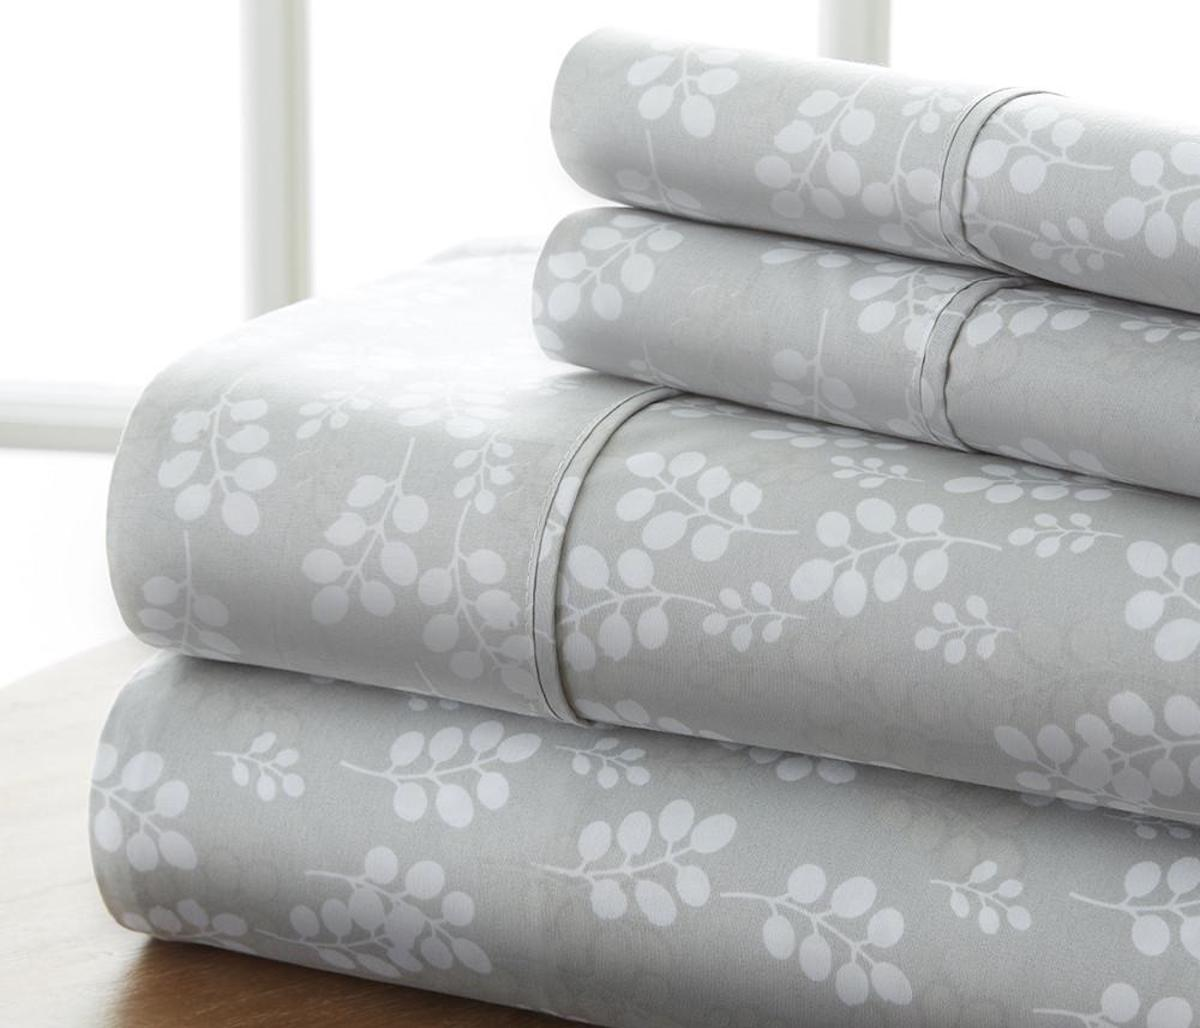 stack of sheets